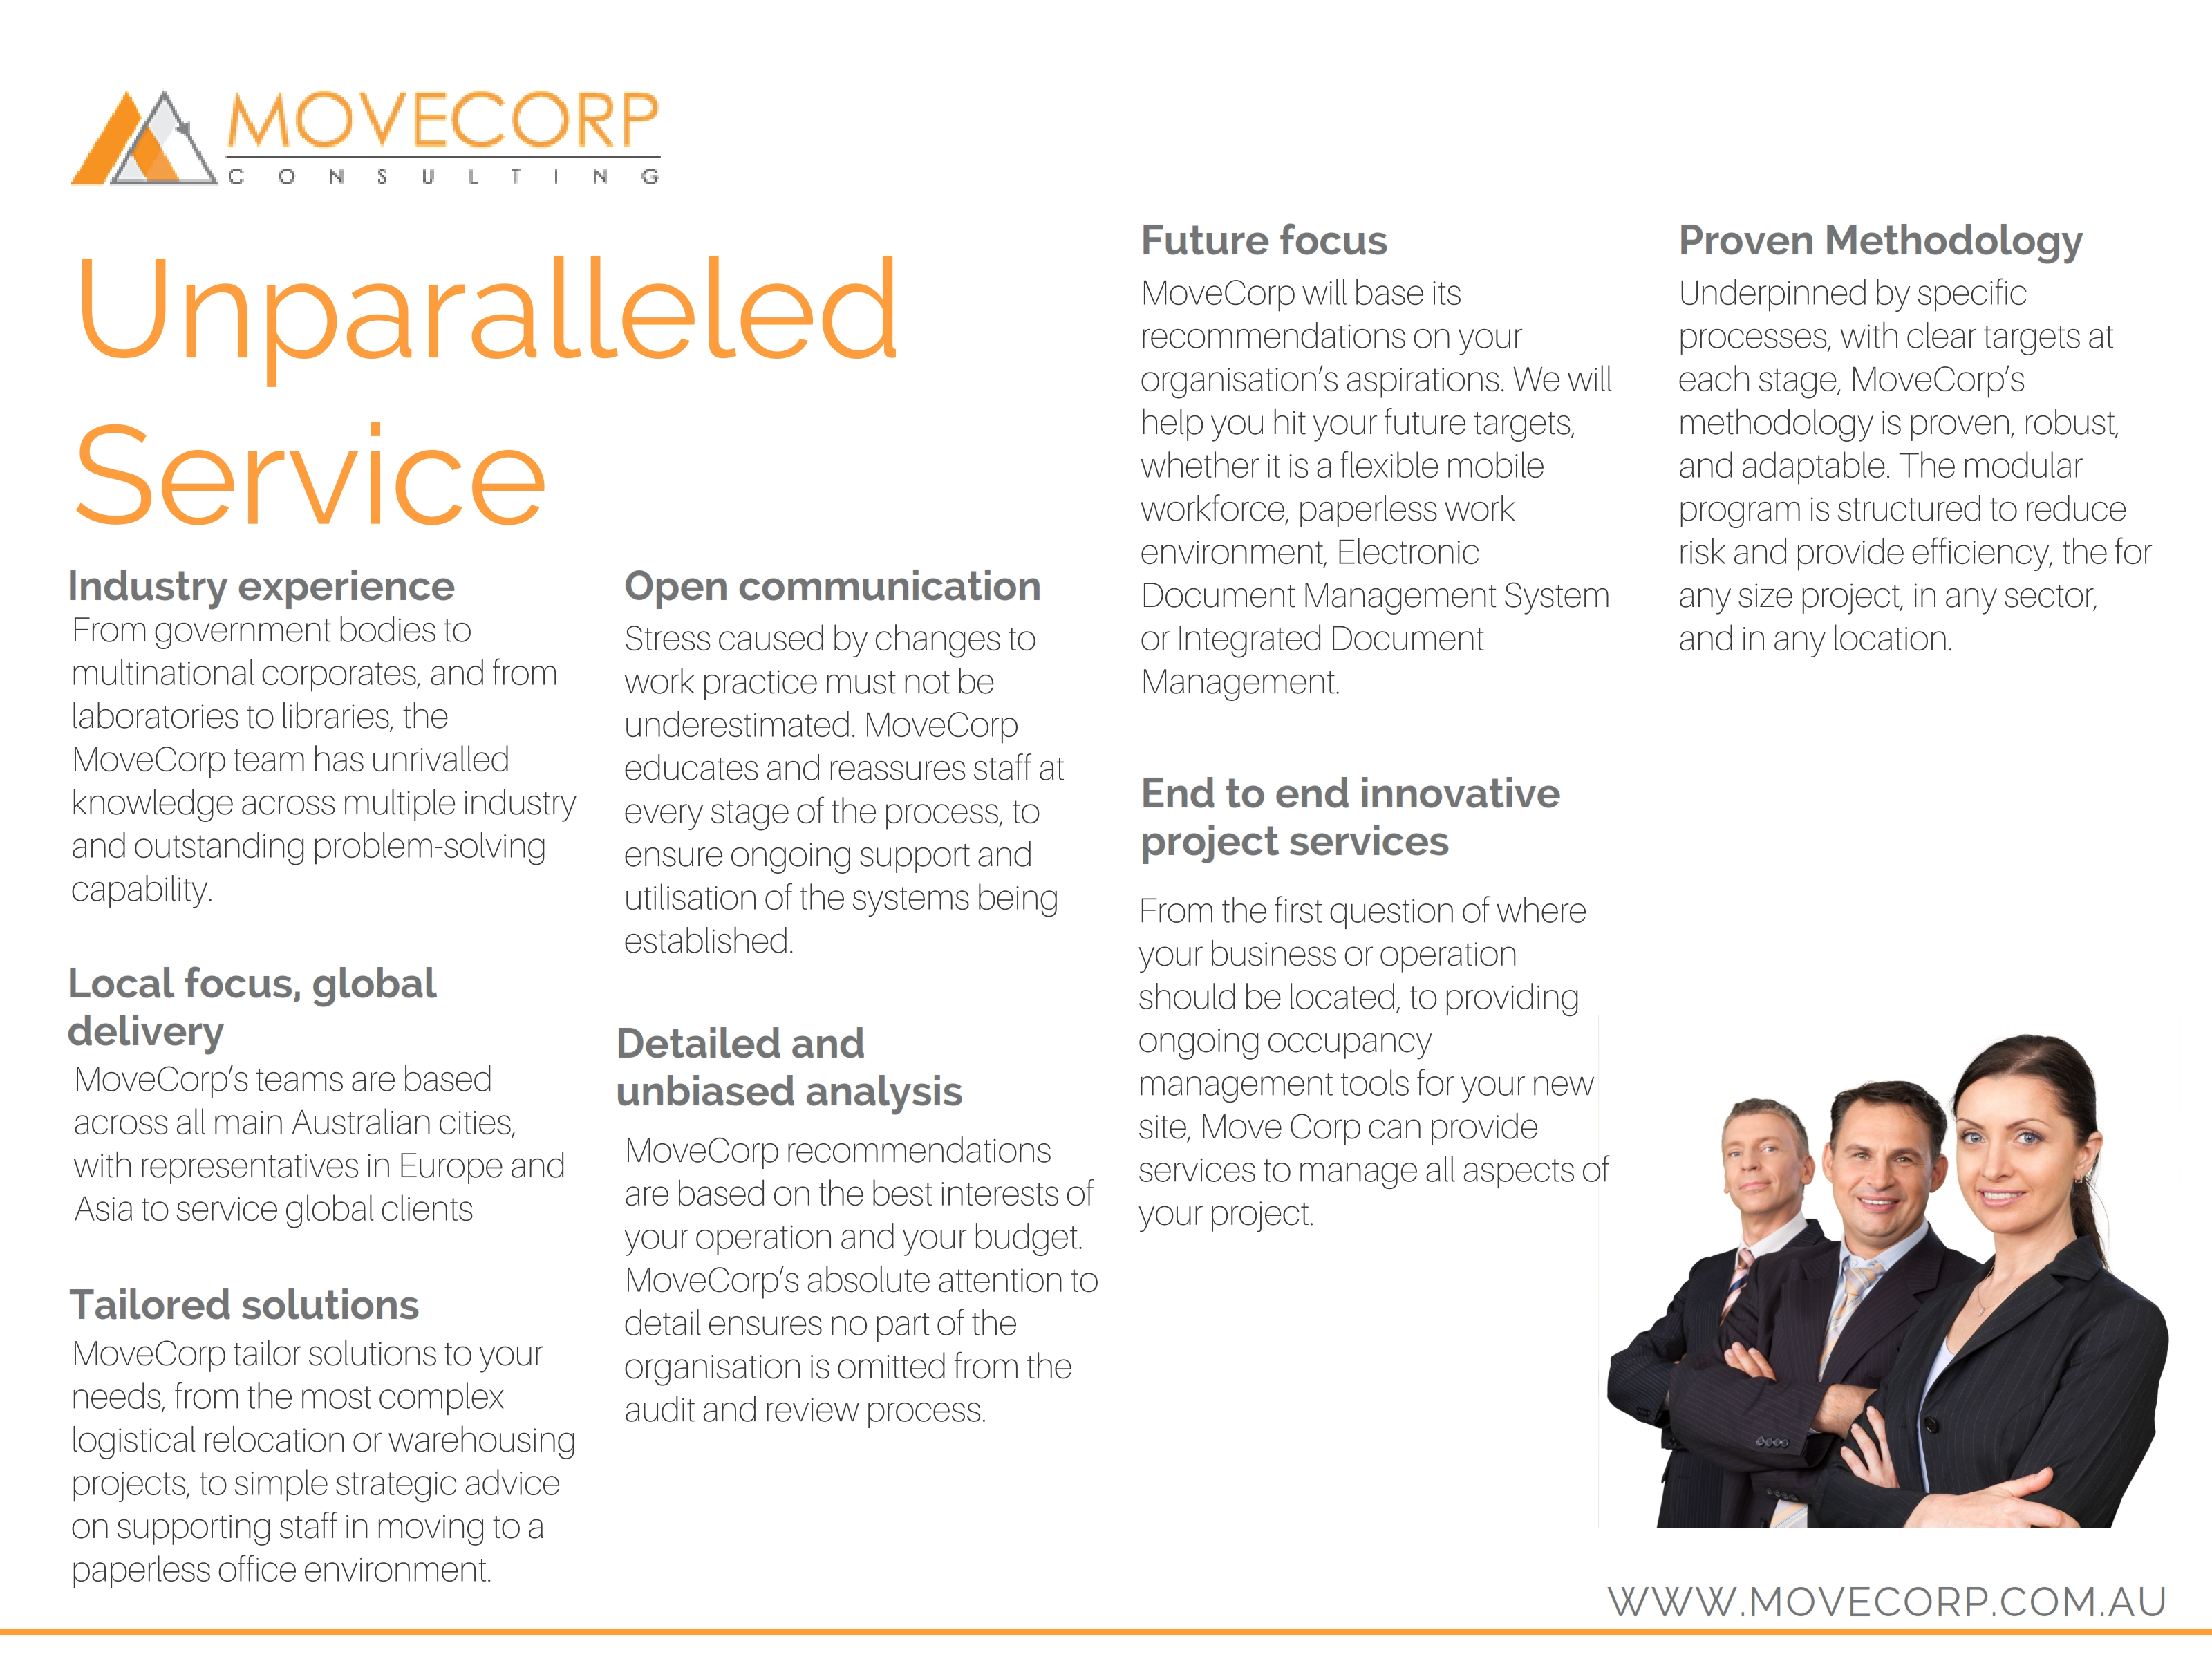 MoveCorp Relocation & Change Methodology (1)_004